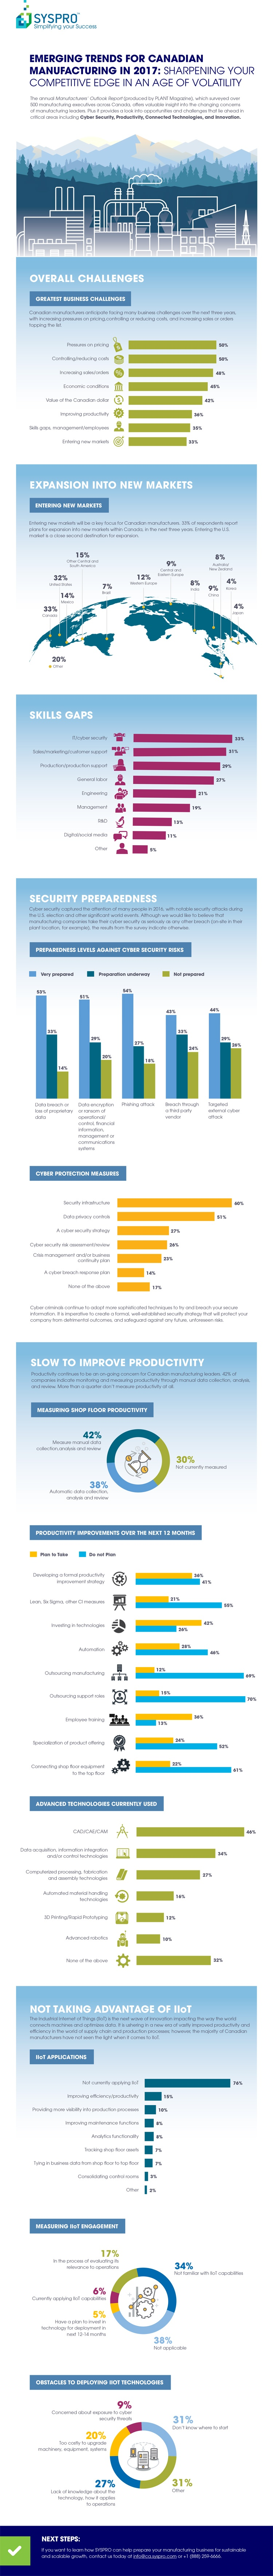 SYSPRO_Canada_Emerging_Trends_for_Canadian_Manufacturing_in_2017_Infographic_FINAL_750px.jpg